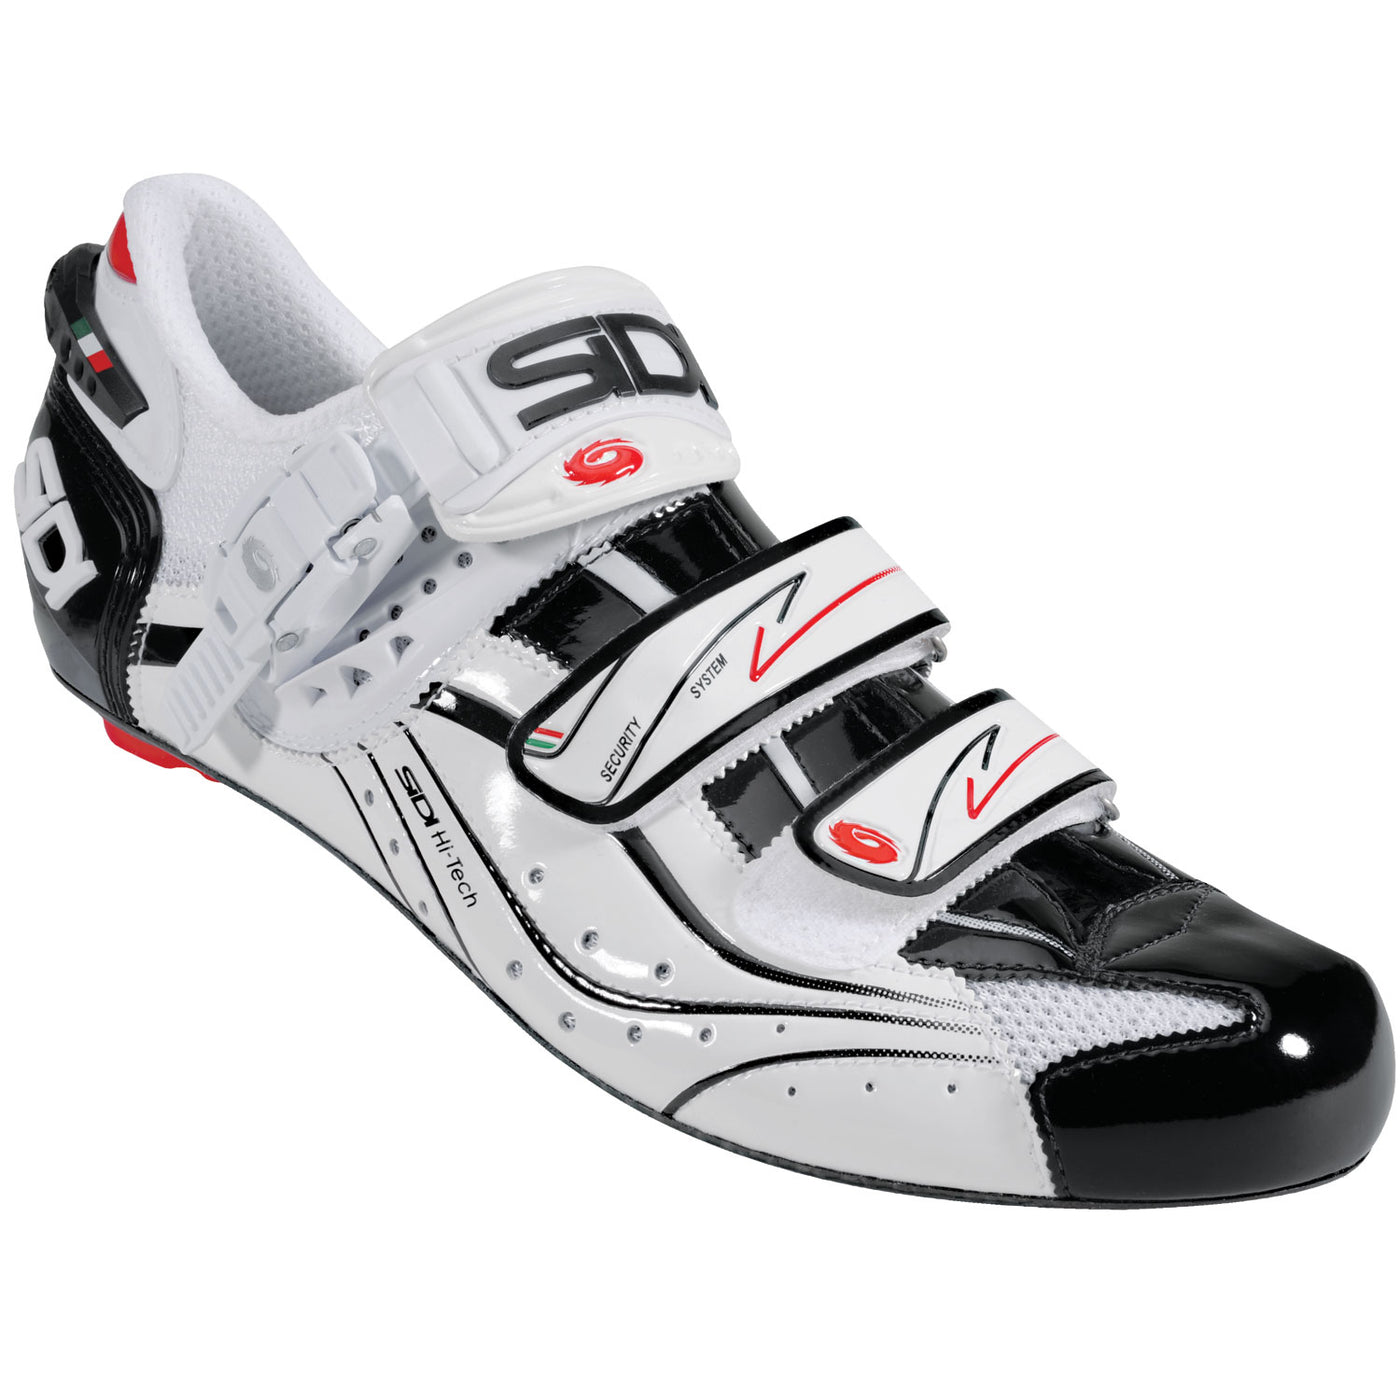 SIDI Genius 6.6 Size 43 Only